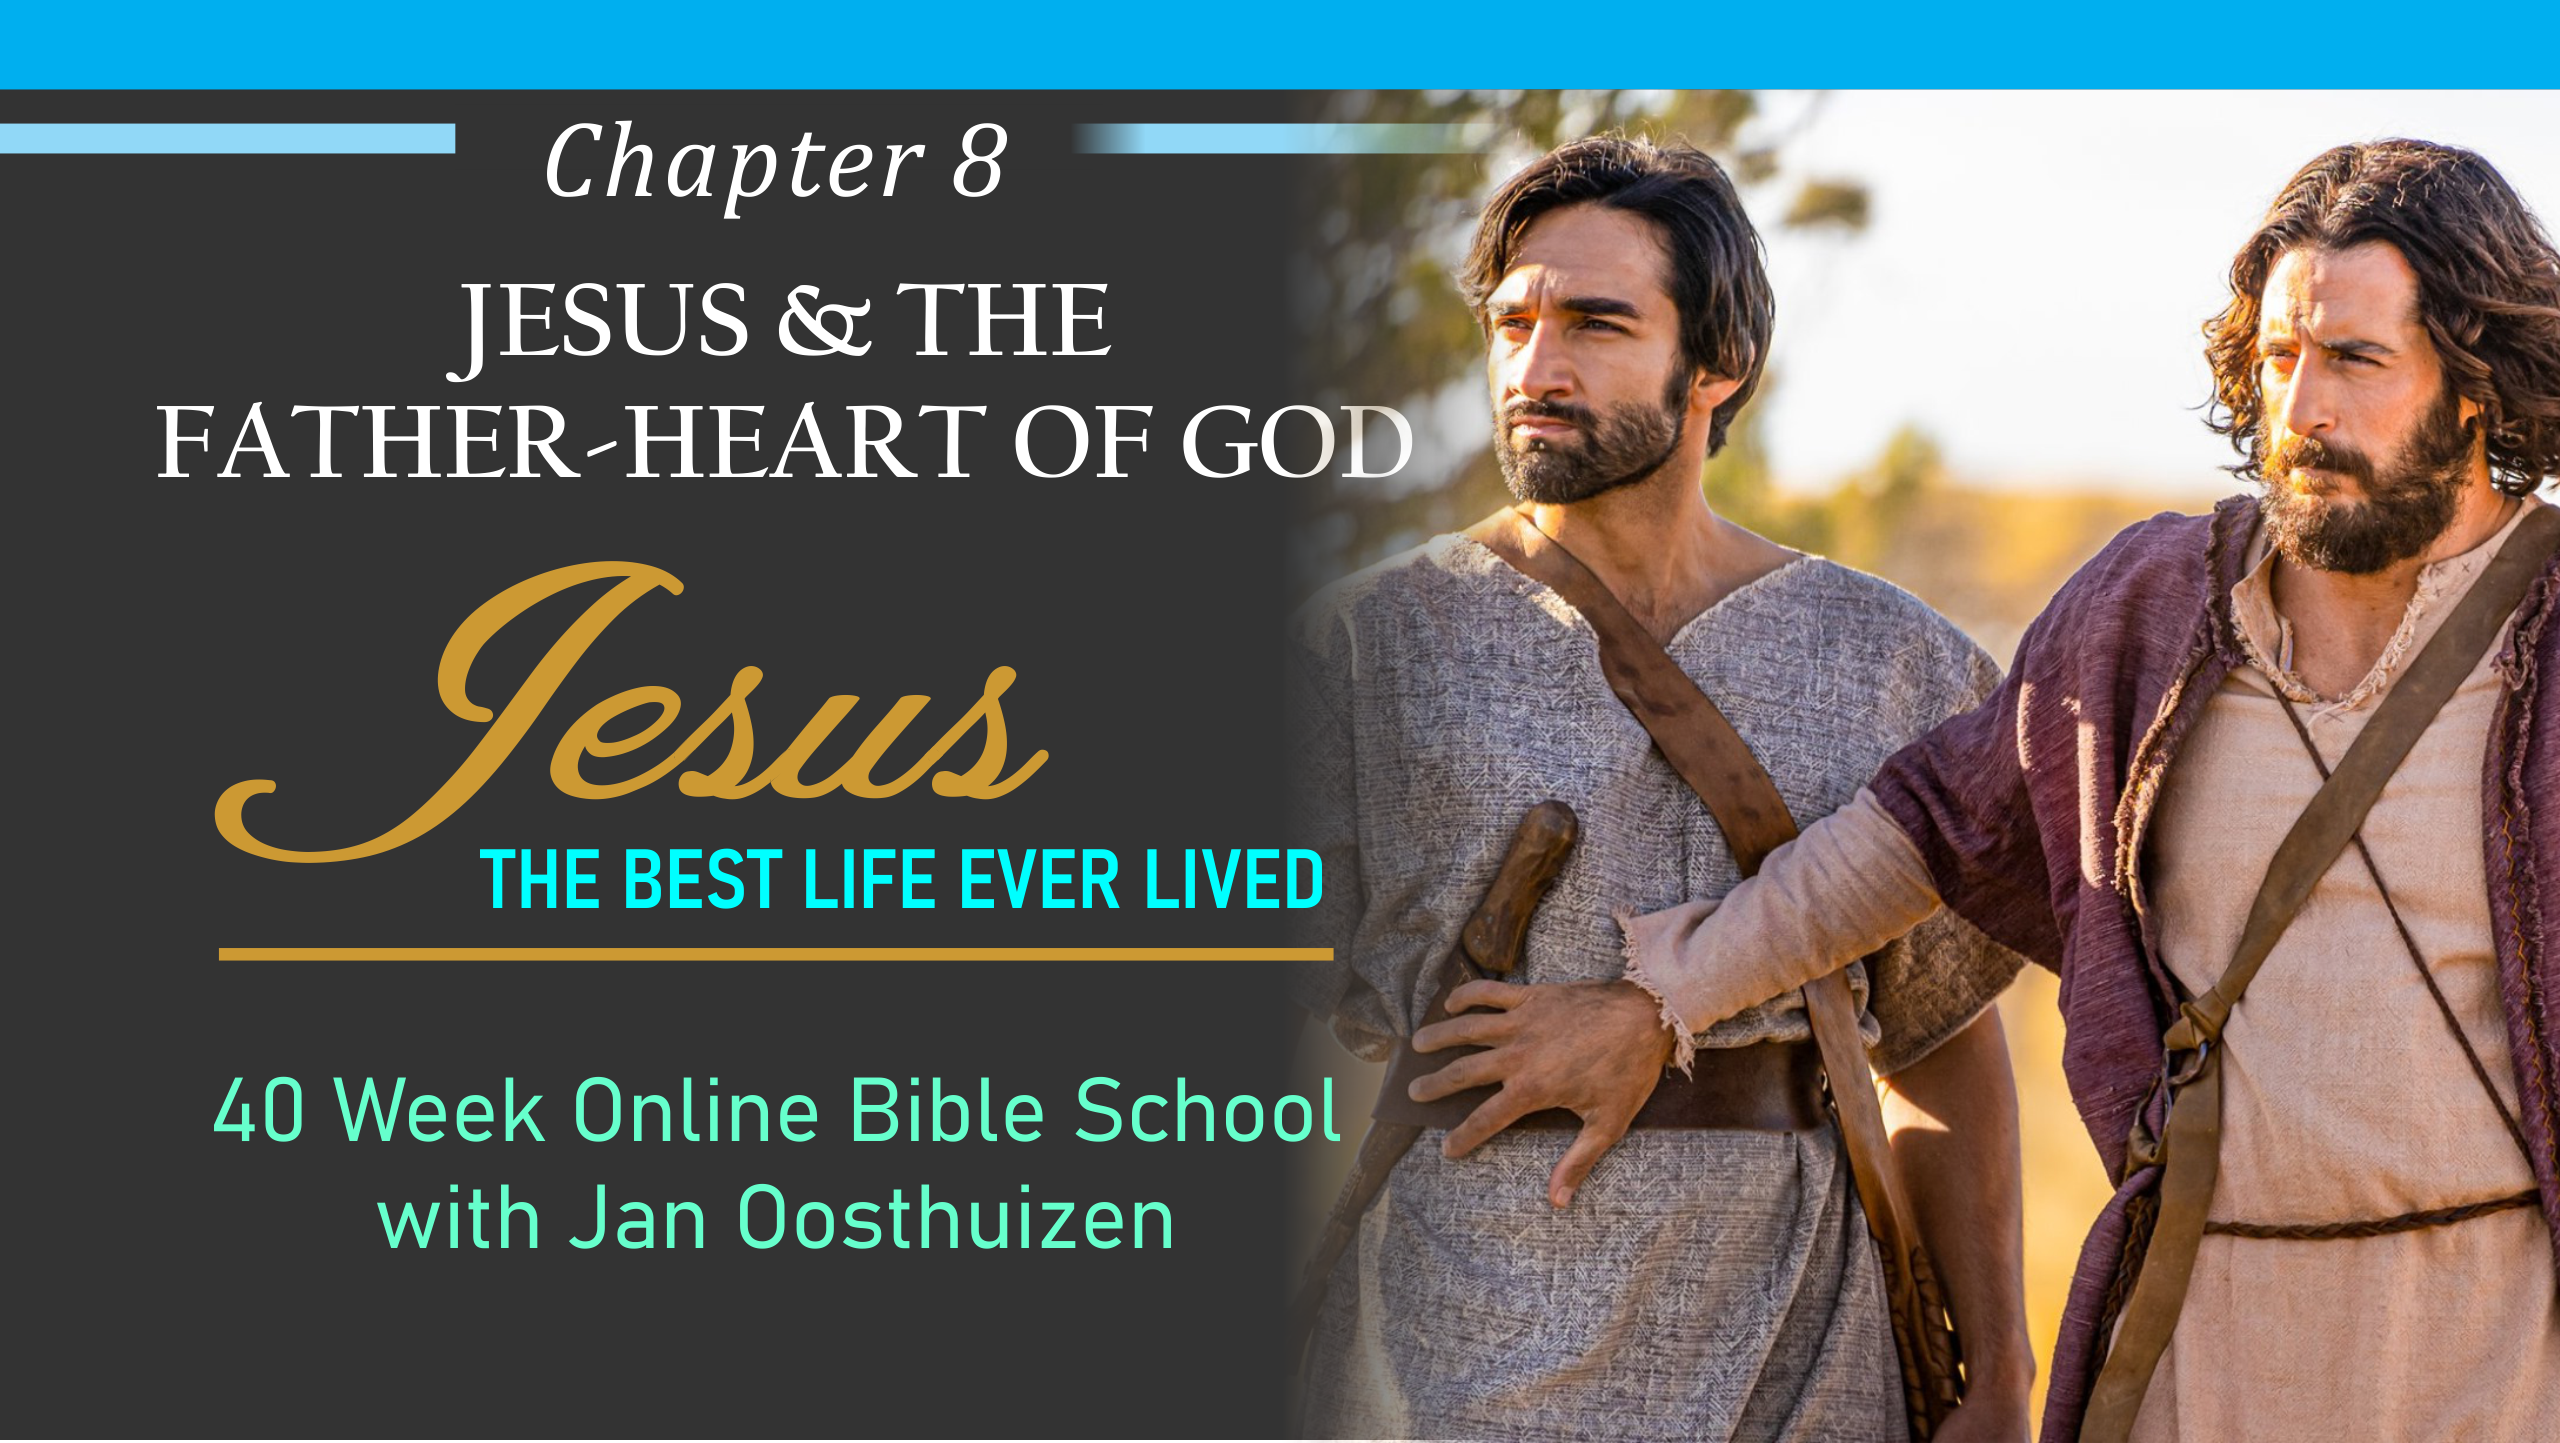 Jesus And The Father-Heart of God